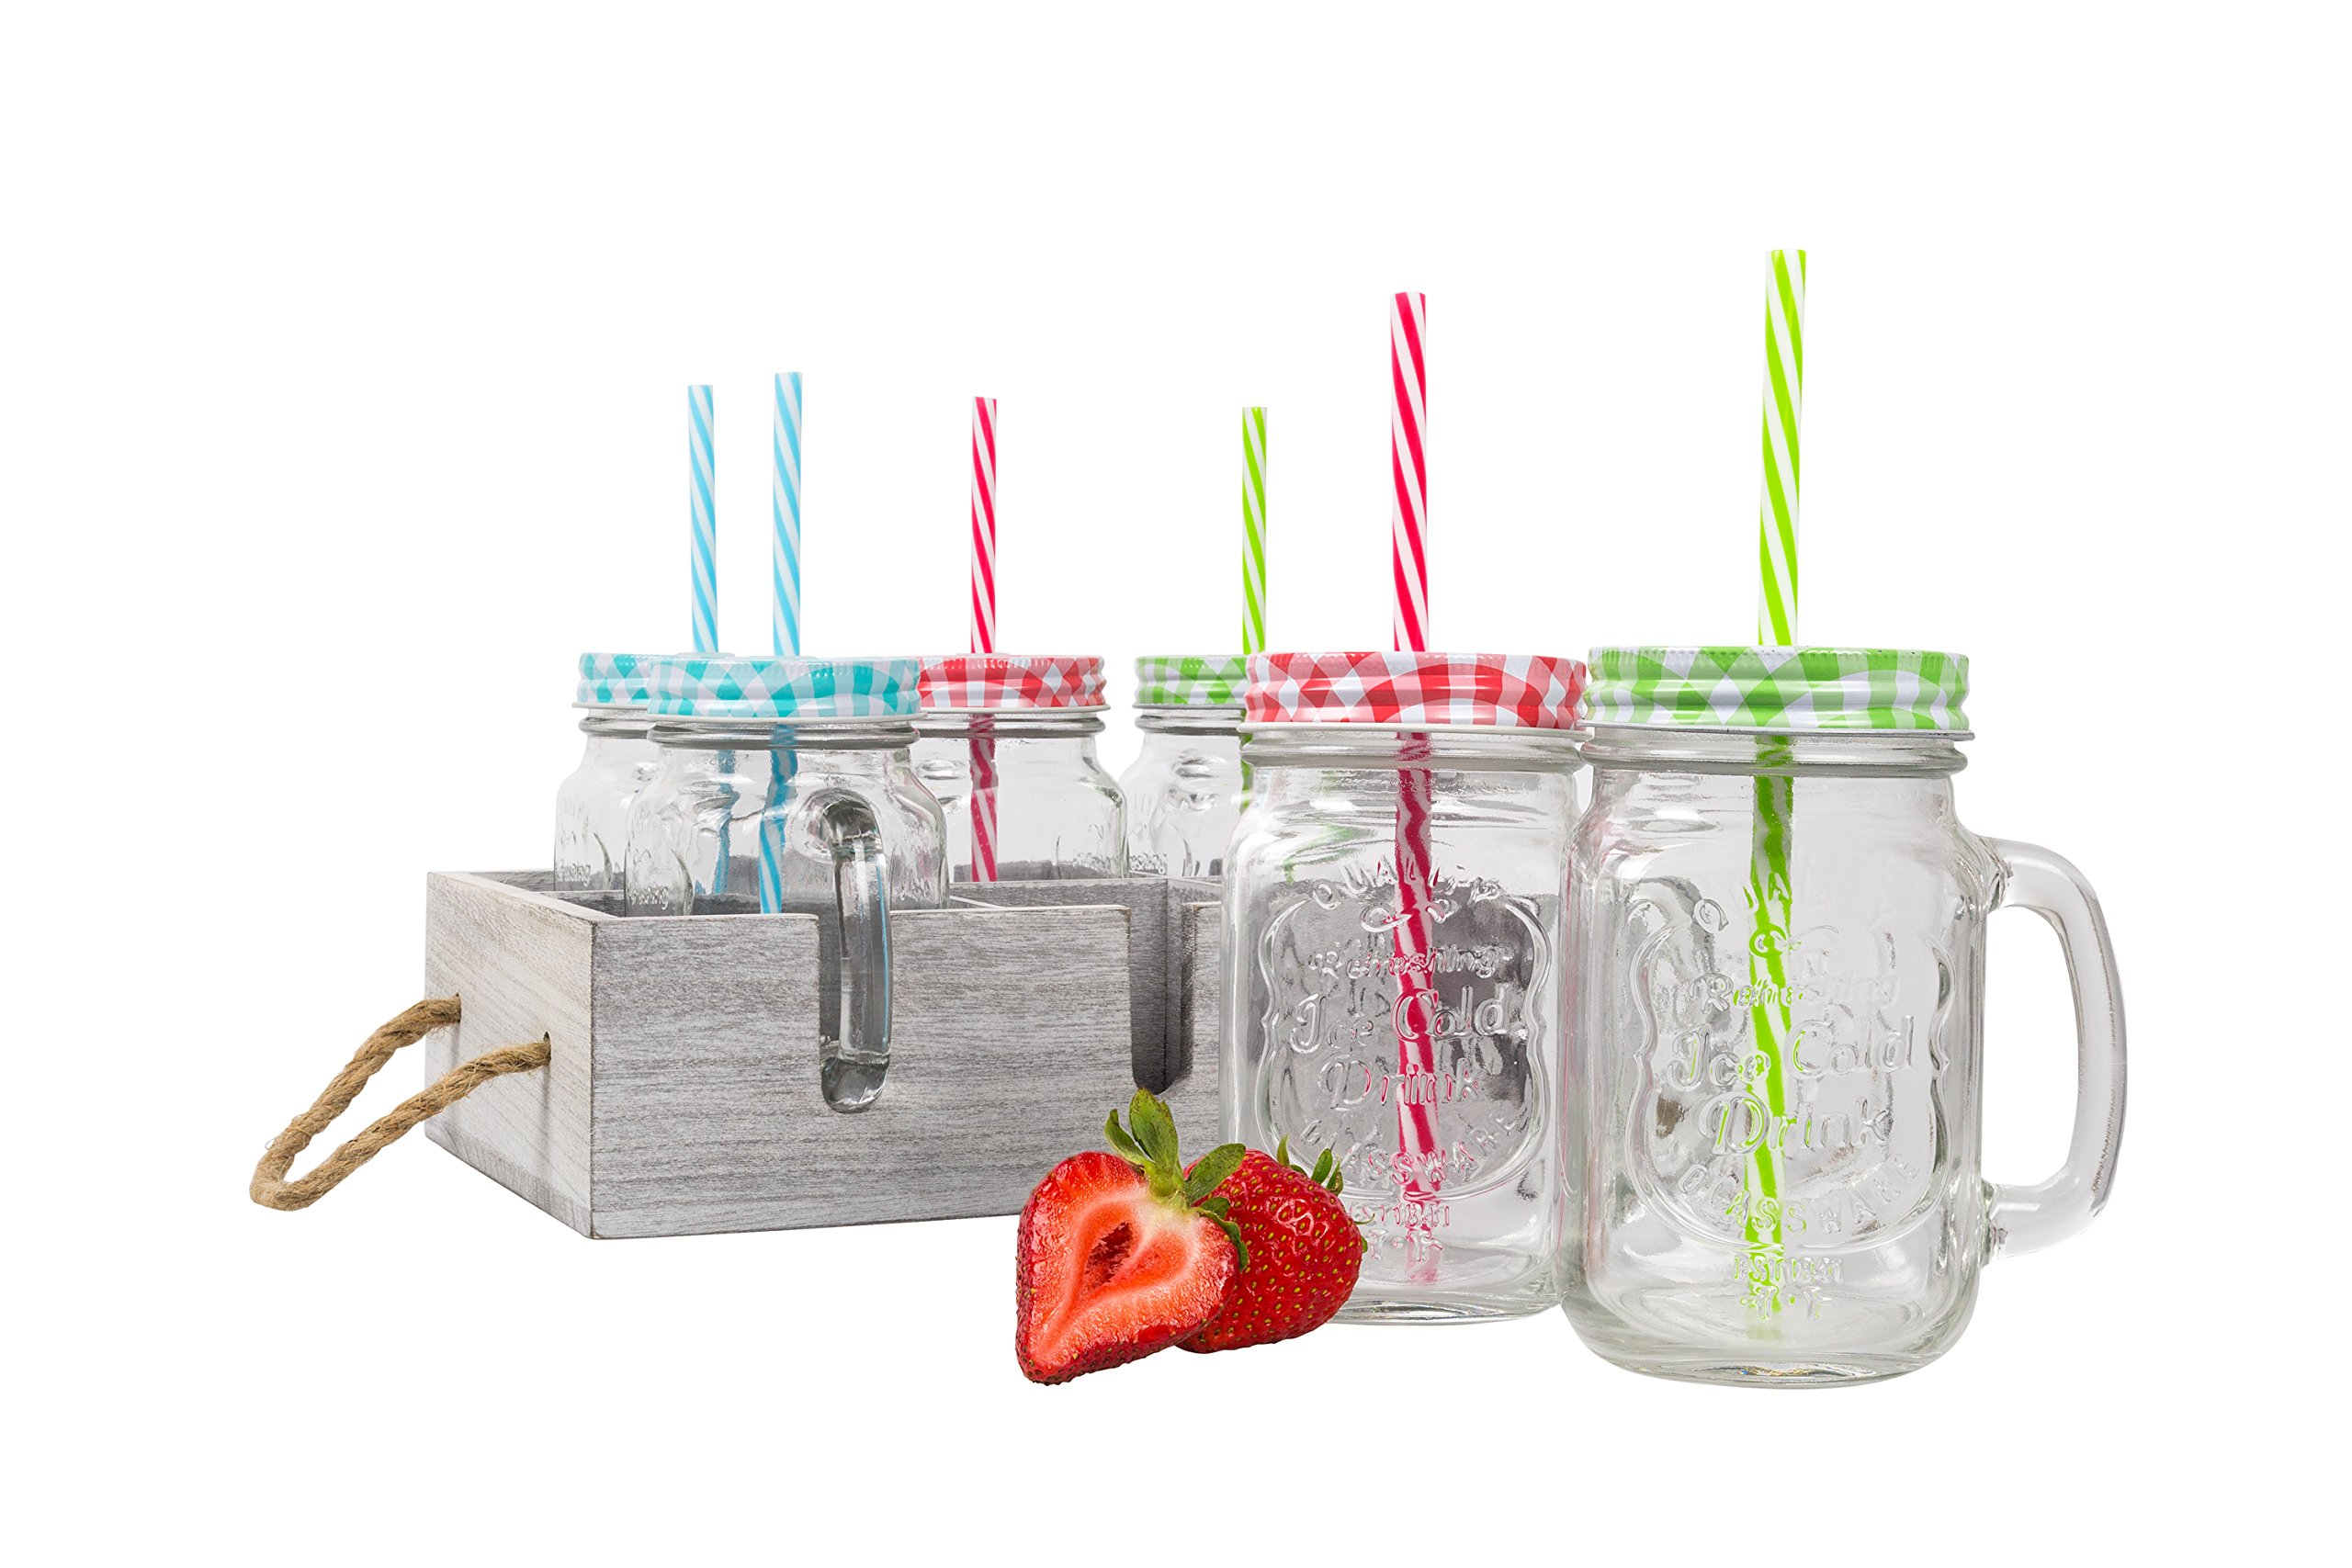 Glass Mason Drinking Jars with Handle & Wooden Carrier with Reusable Straws, Lids & Handles Set of 6, 16oz